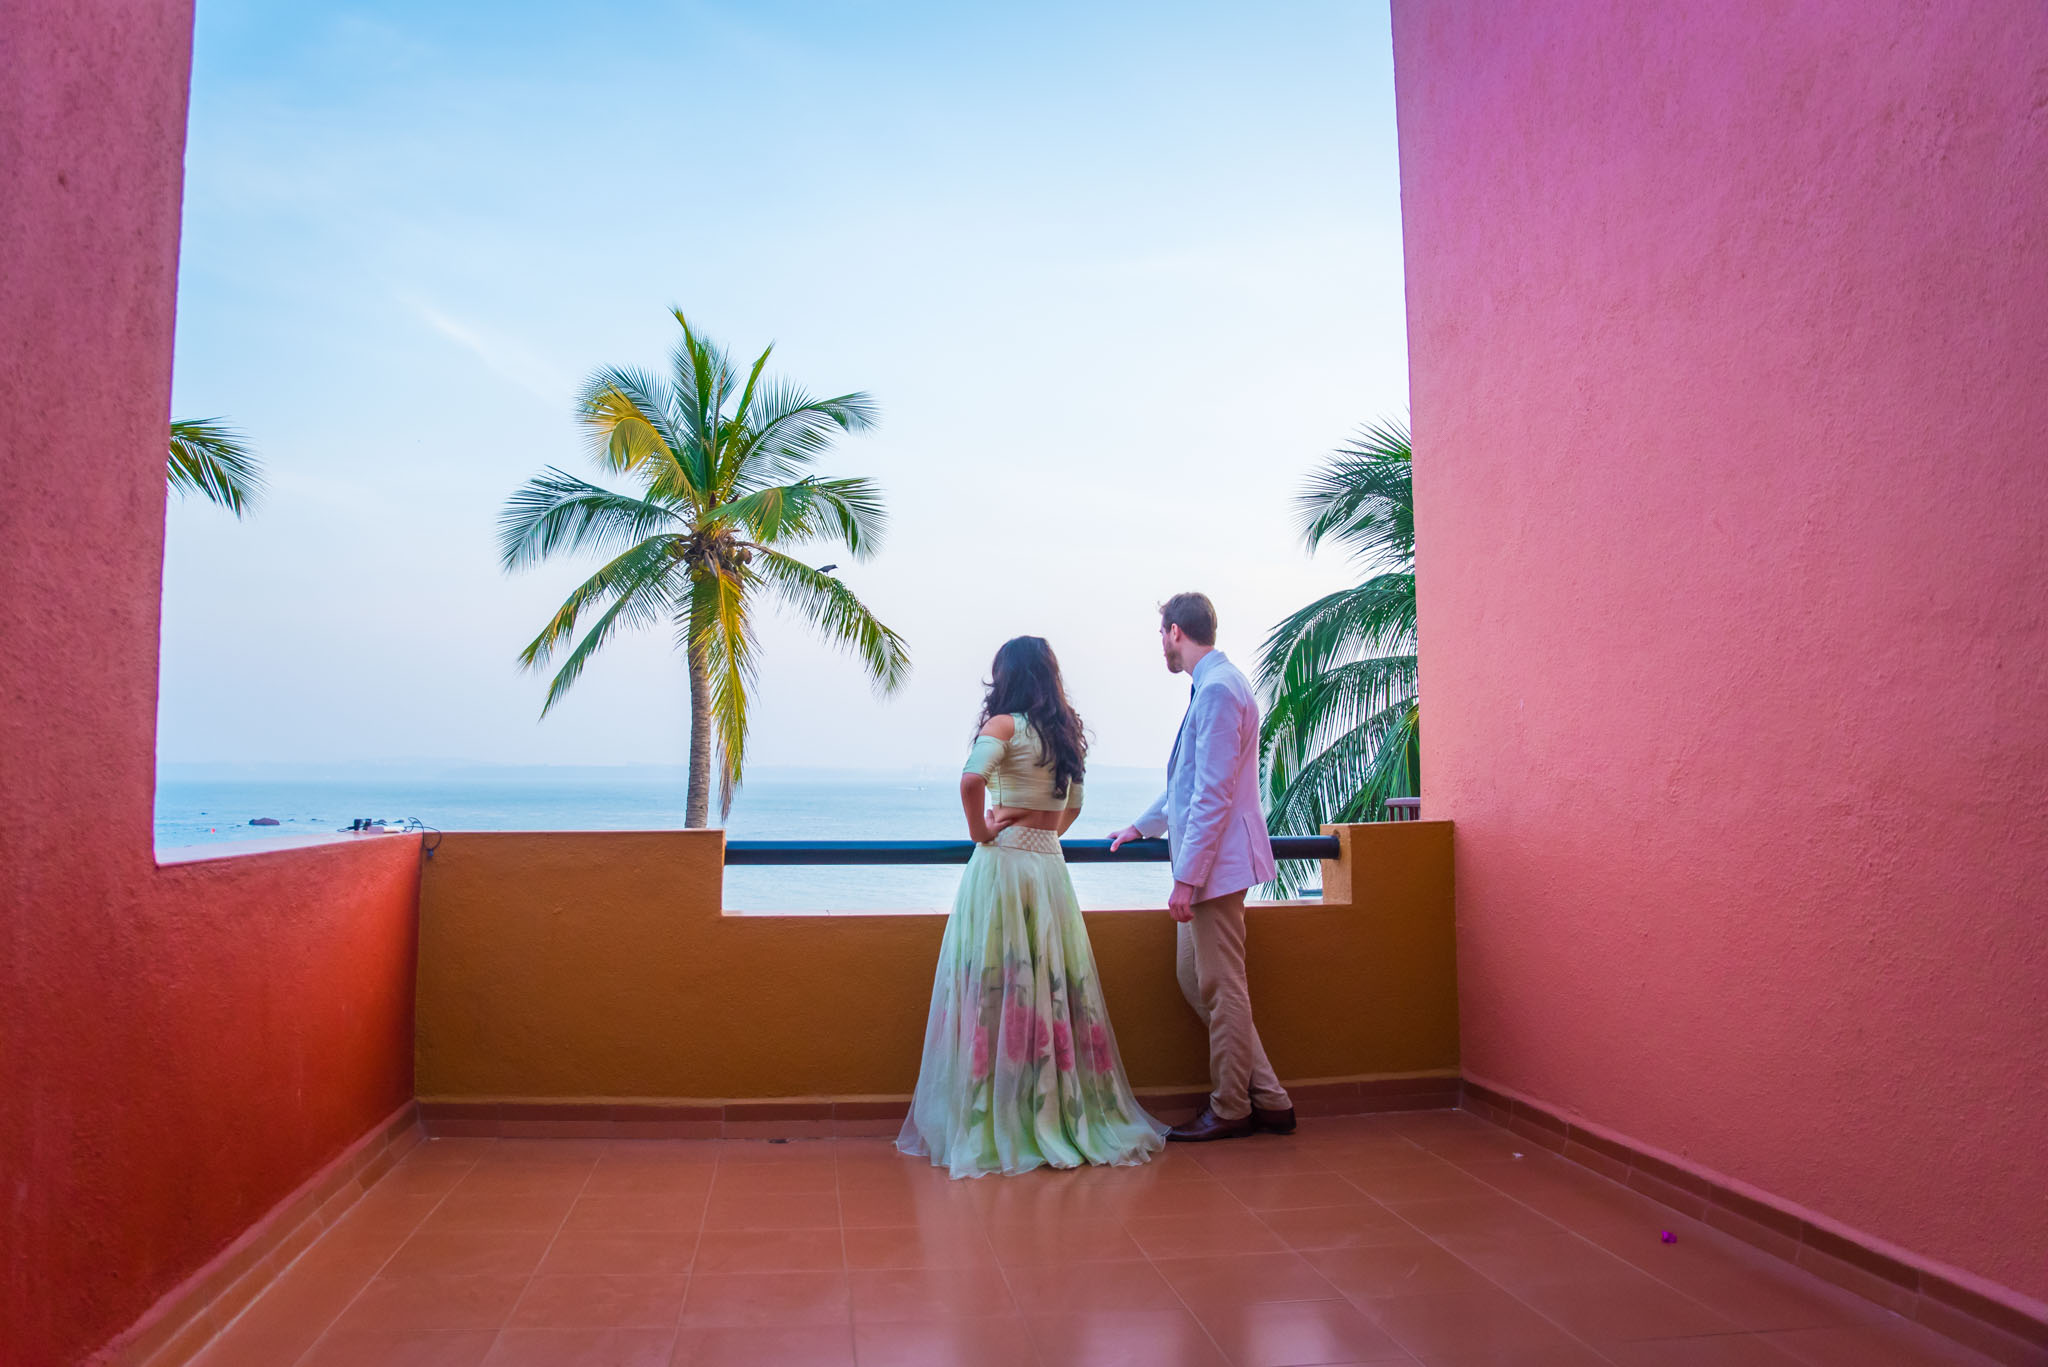 Big-Fat-Indian-Wedding-Destination-Goa-Cidade-de-goa-whatknot-candid-photography-9